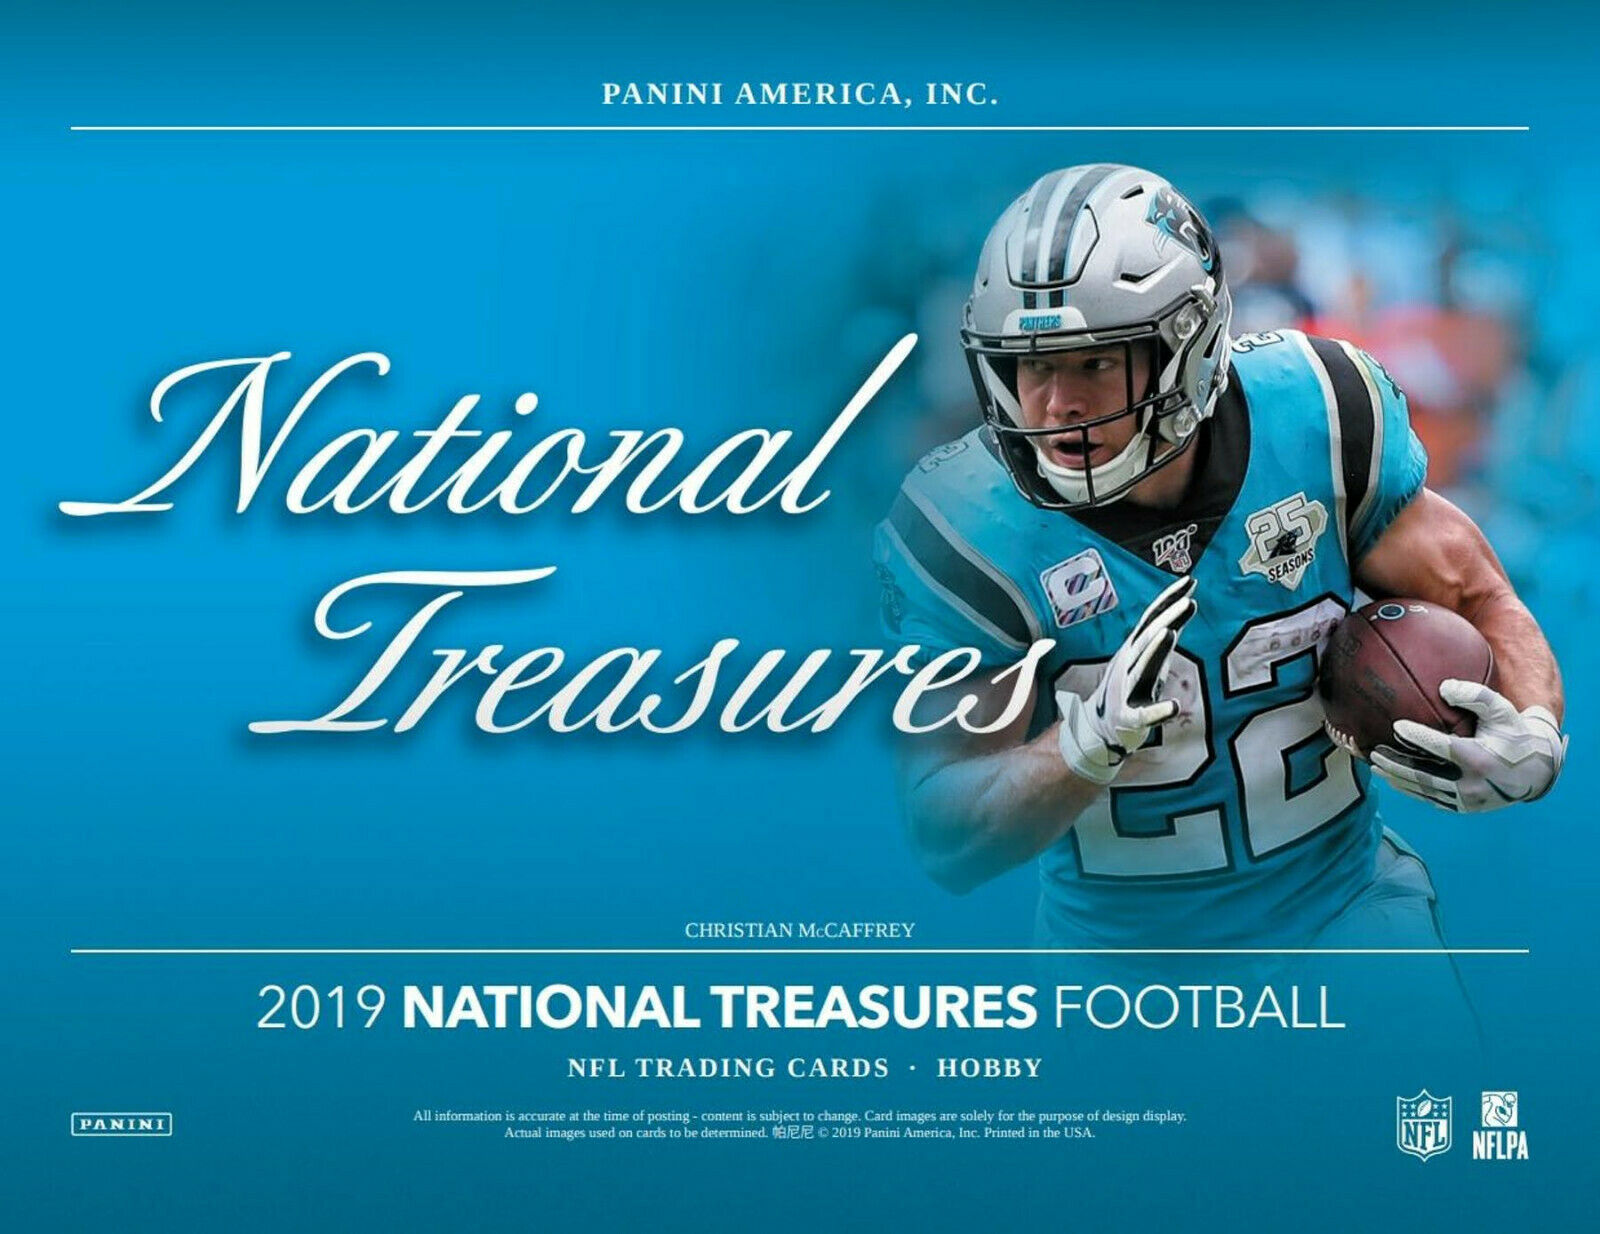 JUSTICE HILL - 2019 National Treasures 2X FULL CASE (8bx) BREAK #1 For Sale - 2